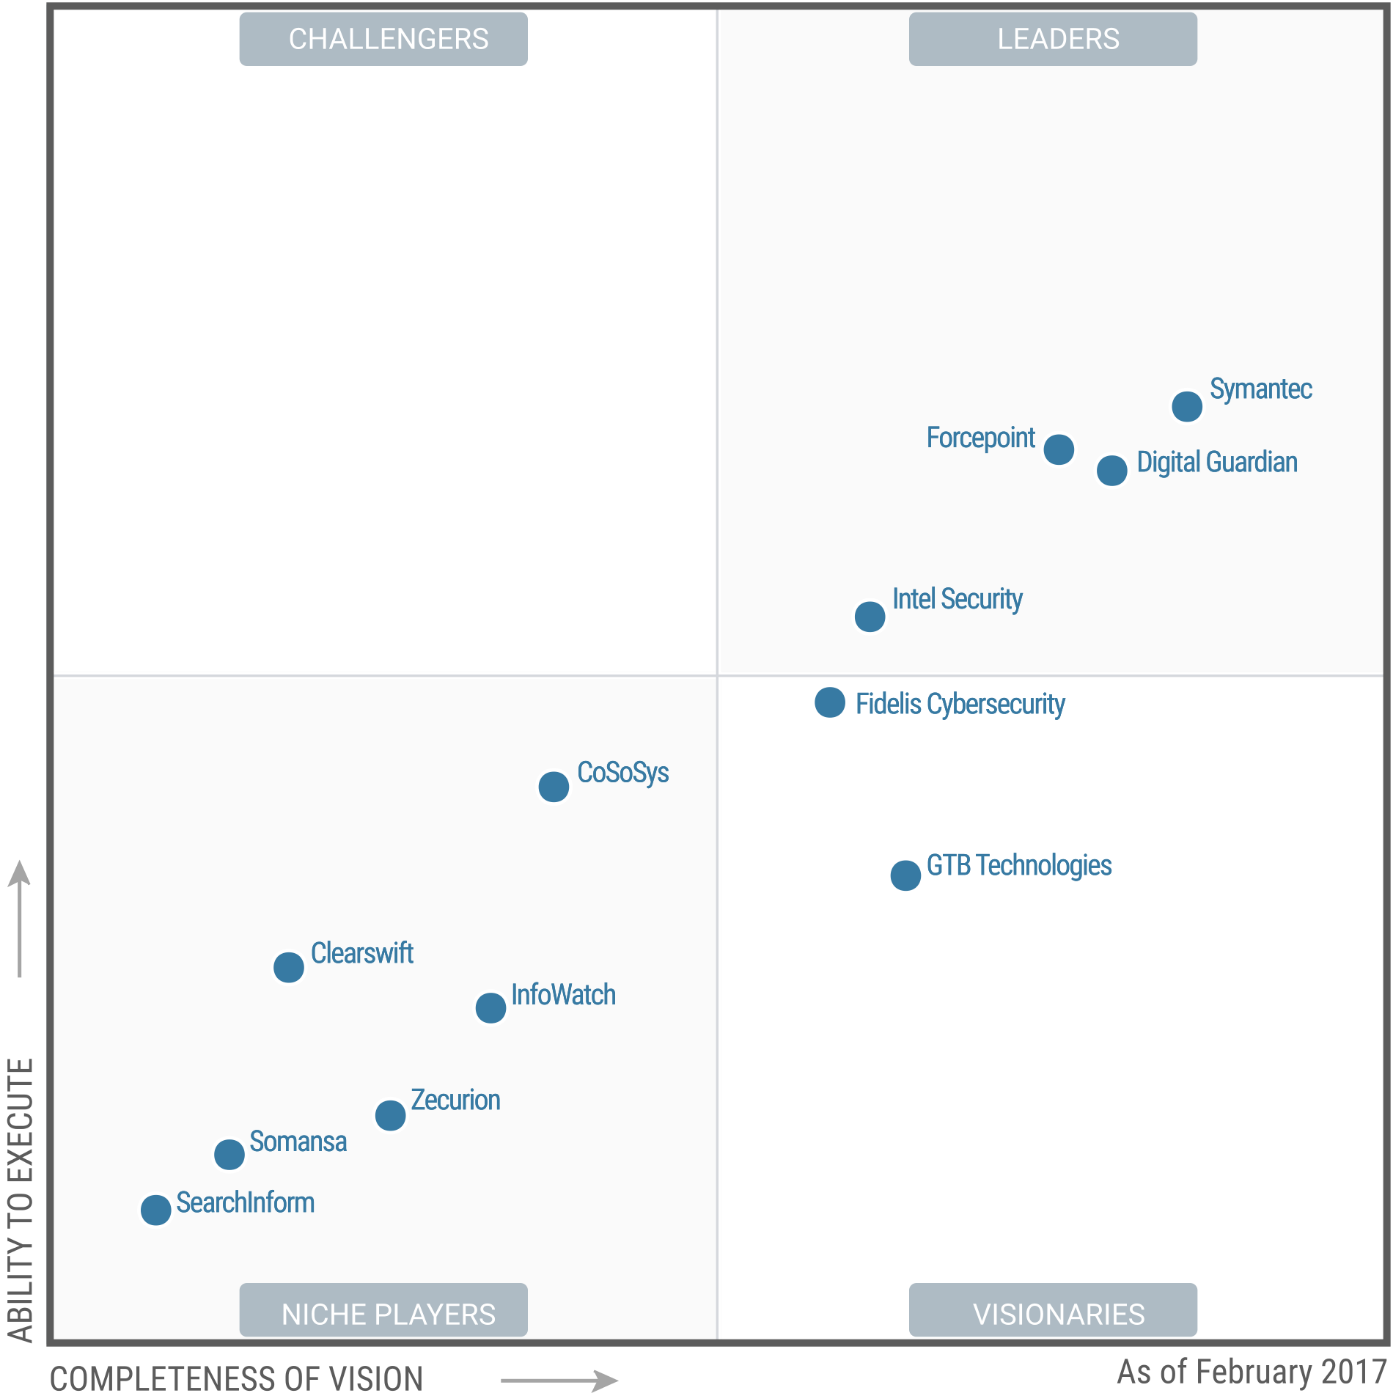 Magic Quadrant for Enterprise Data Loss Prevention 2017 (G00300911)